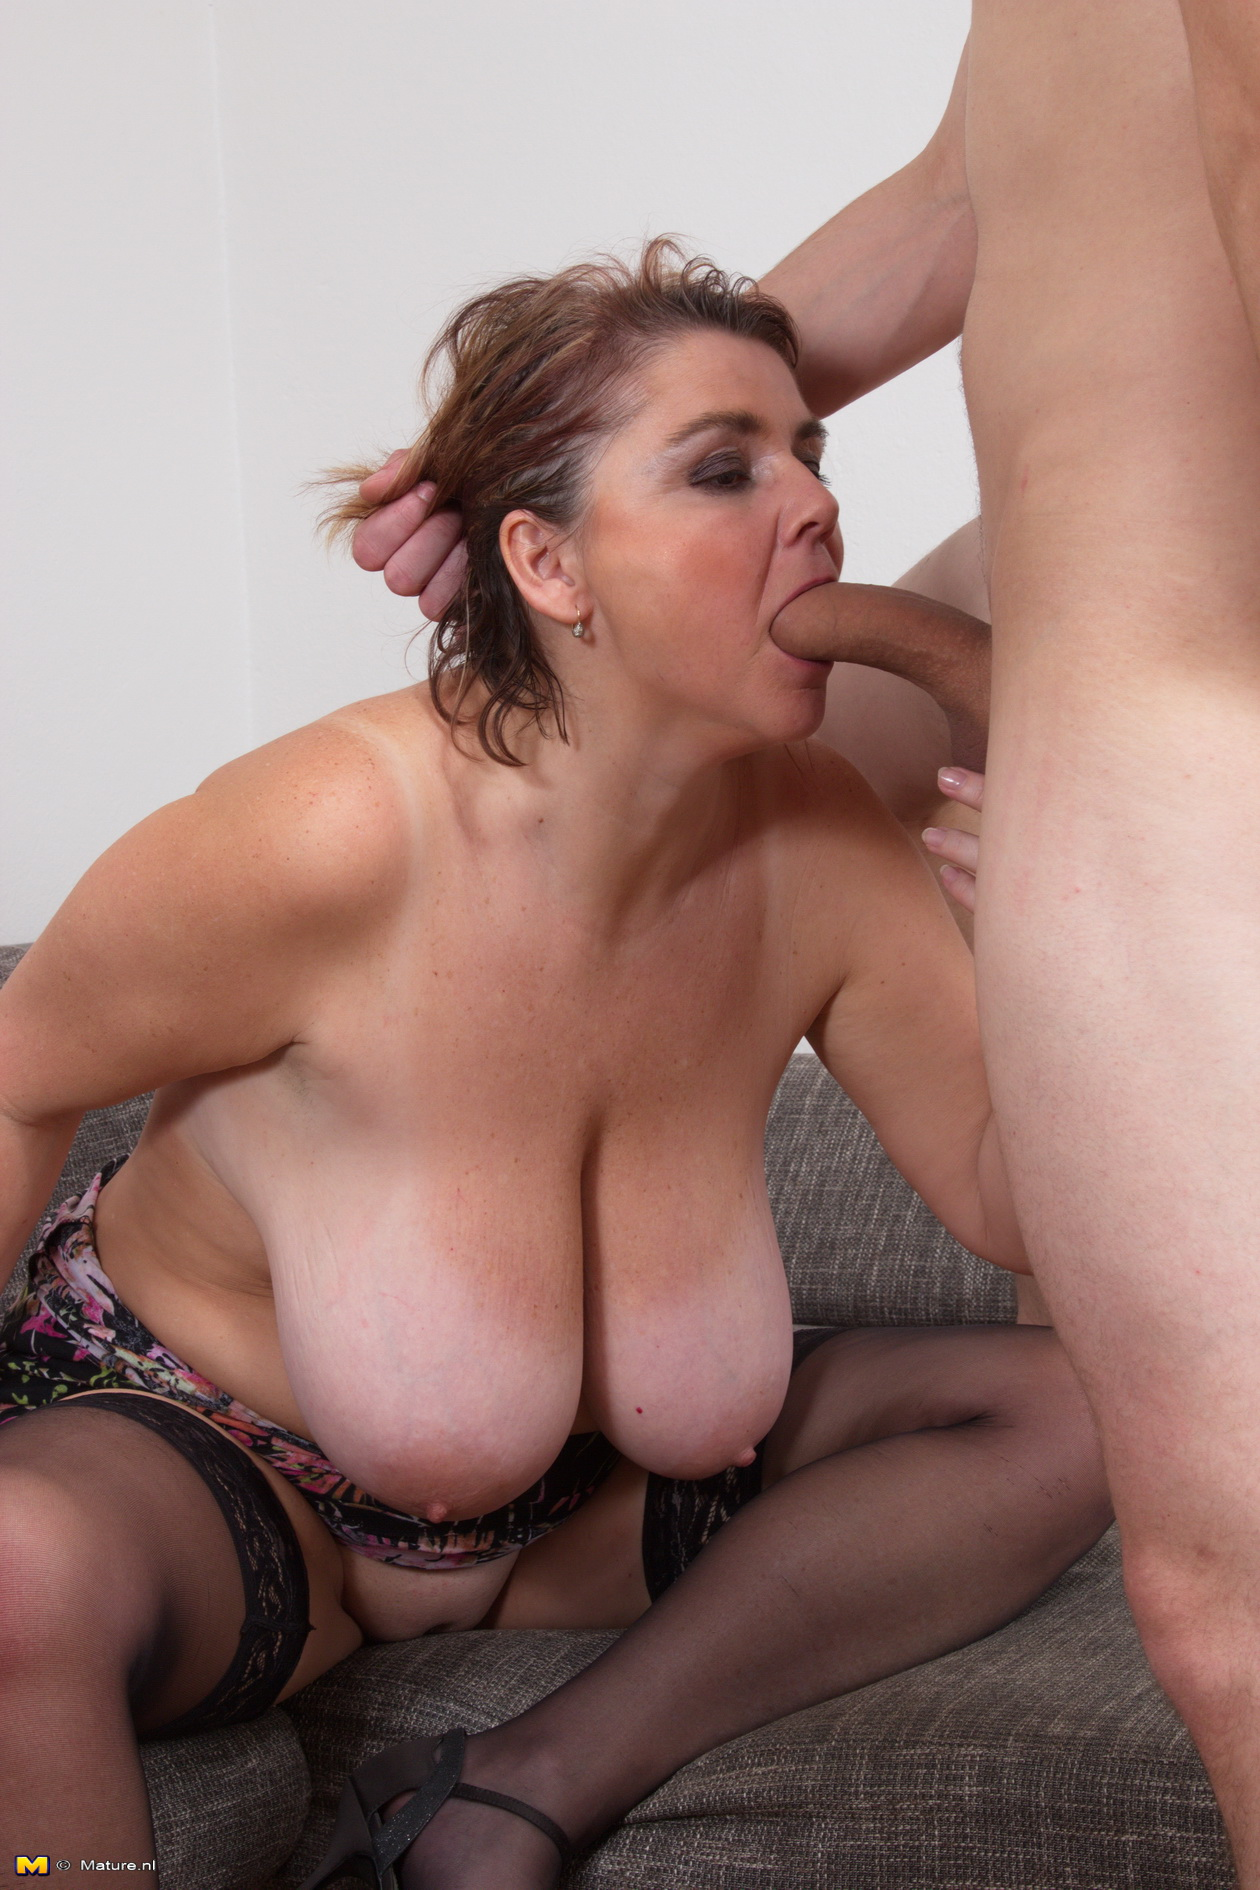 big breasted women fucking